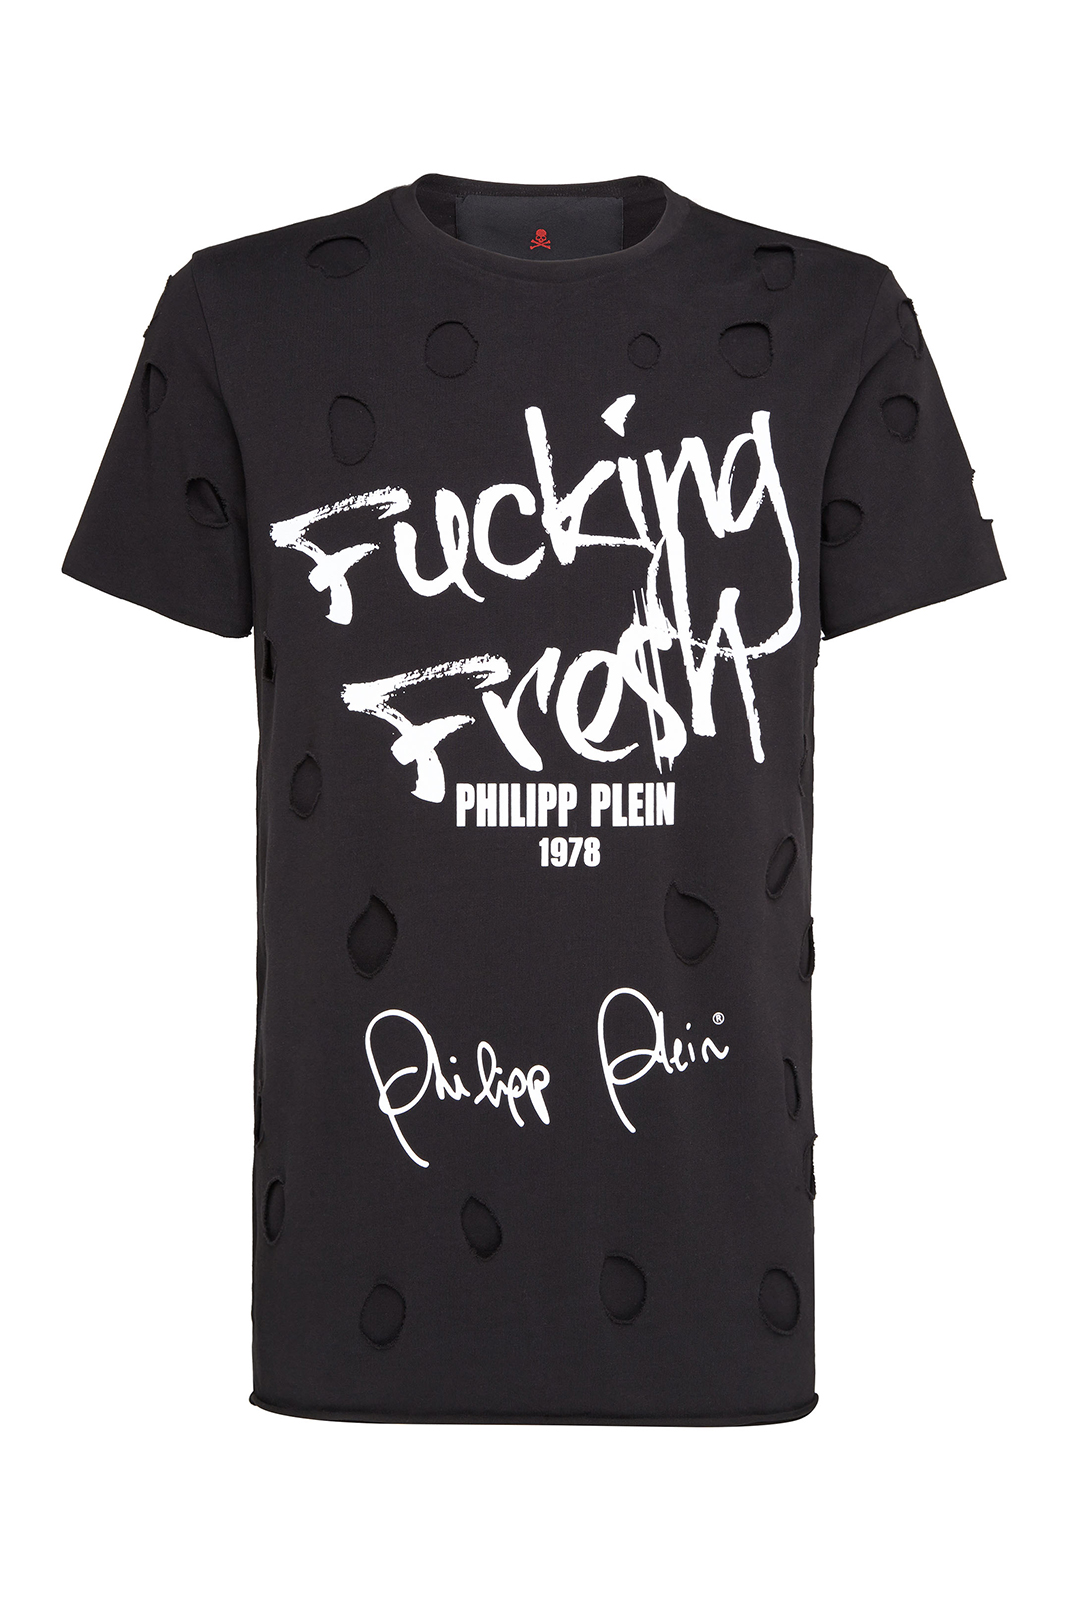 Tee-shirts  Philipp plein MTK2482 Round neck ss fresh BLACK